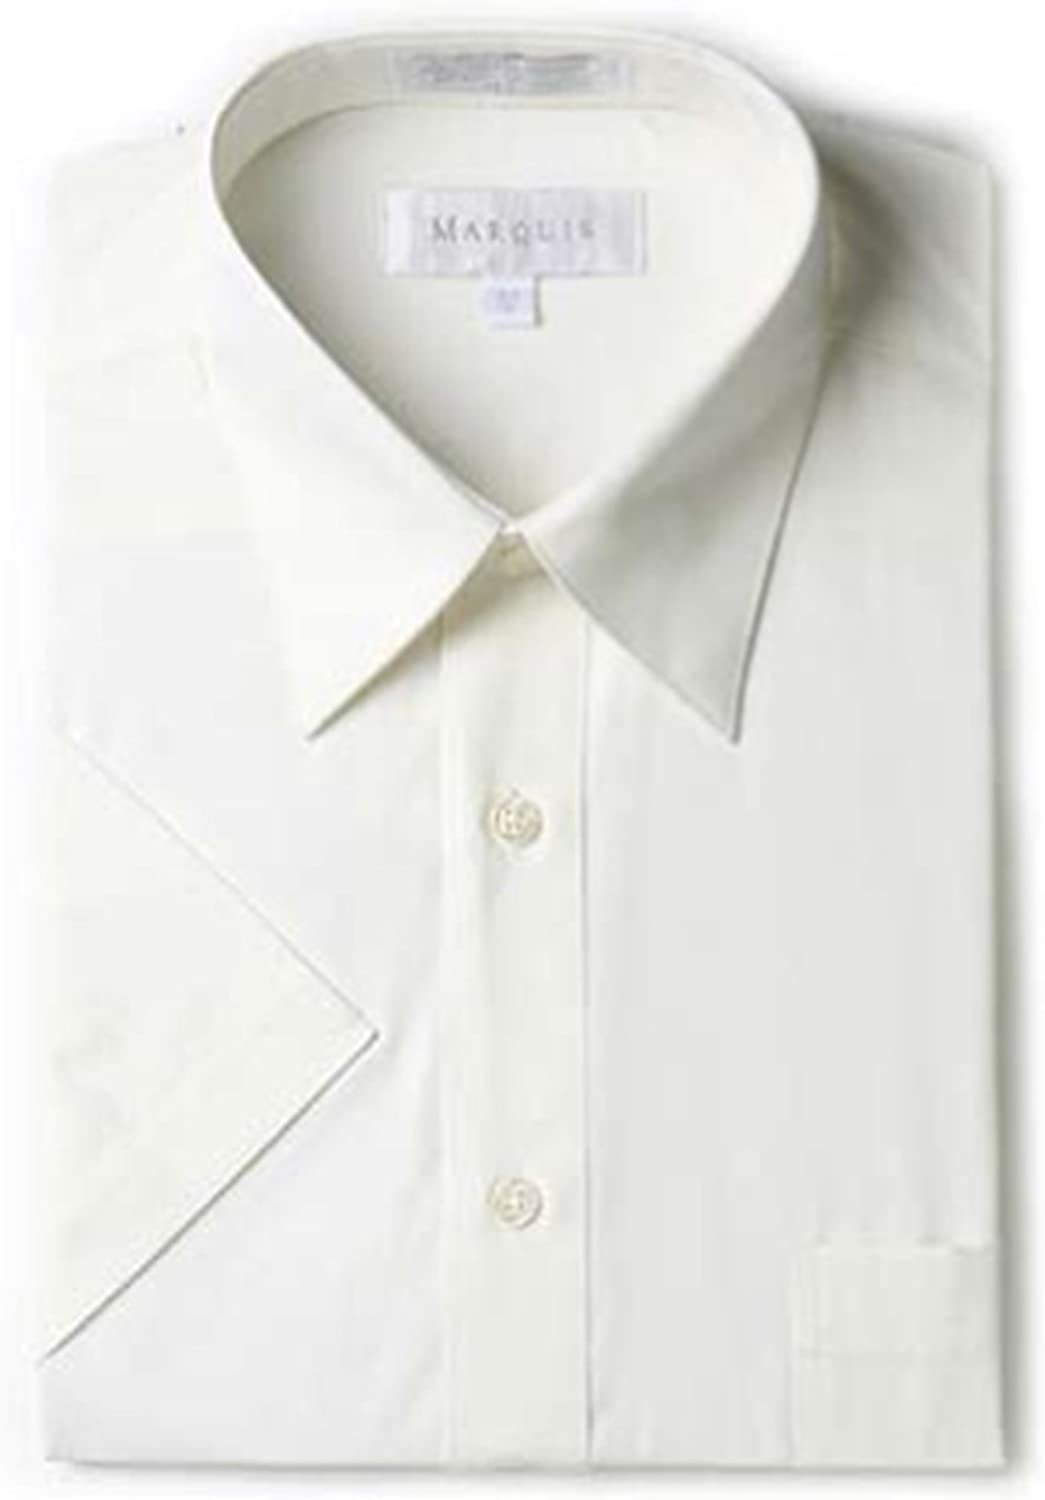 Marquis Men's Solid Color Short Sleeve Small Size Dress Shirt, N 14.5